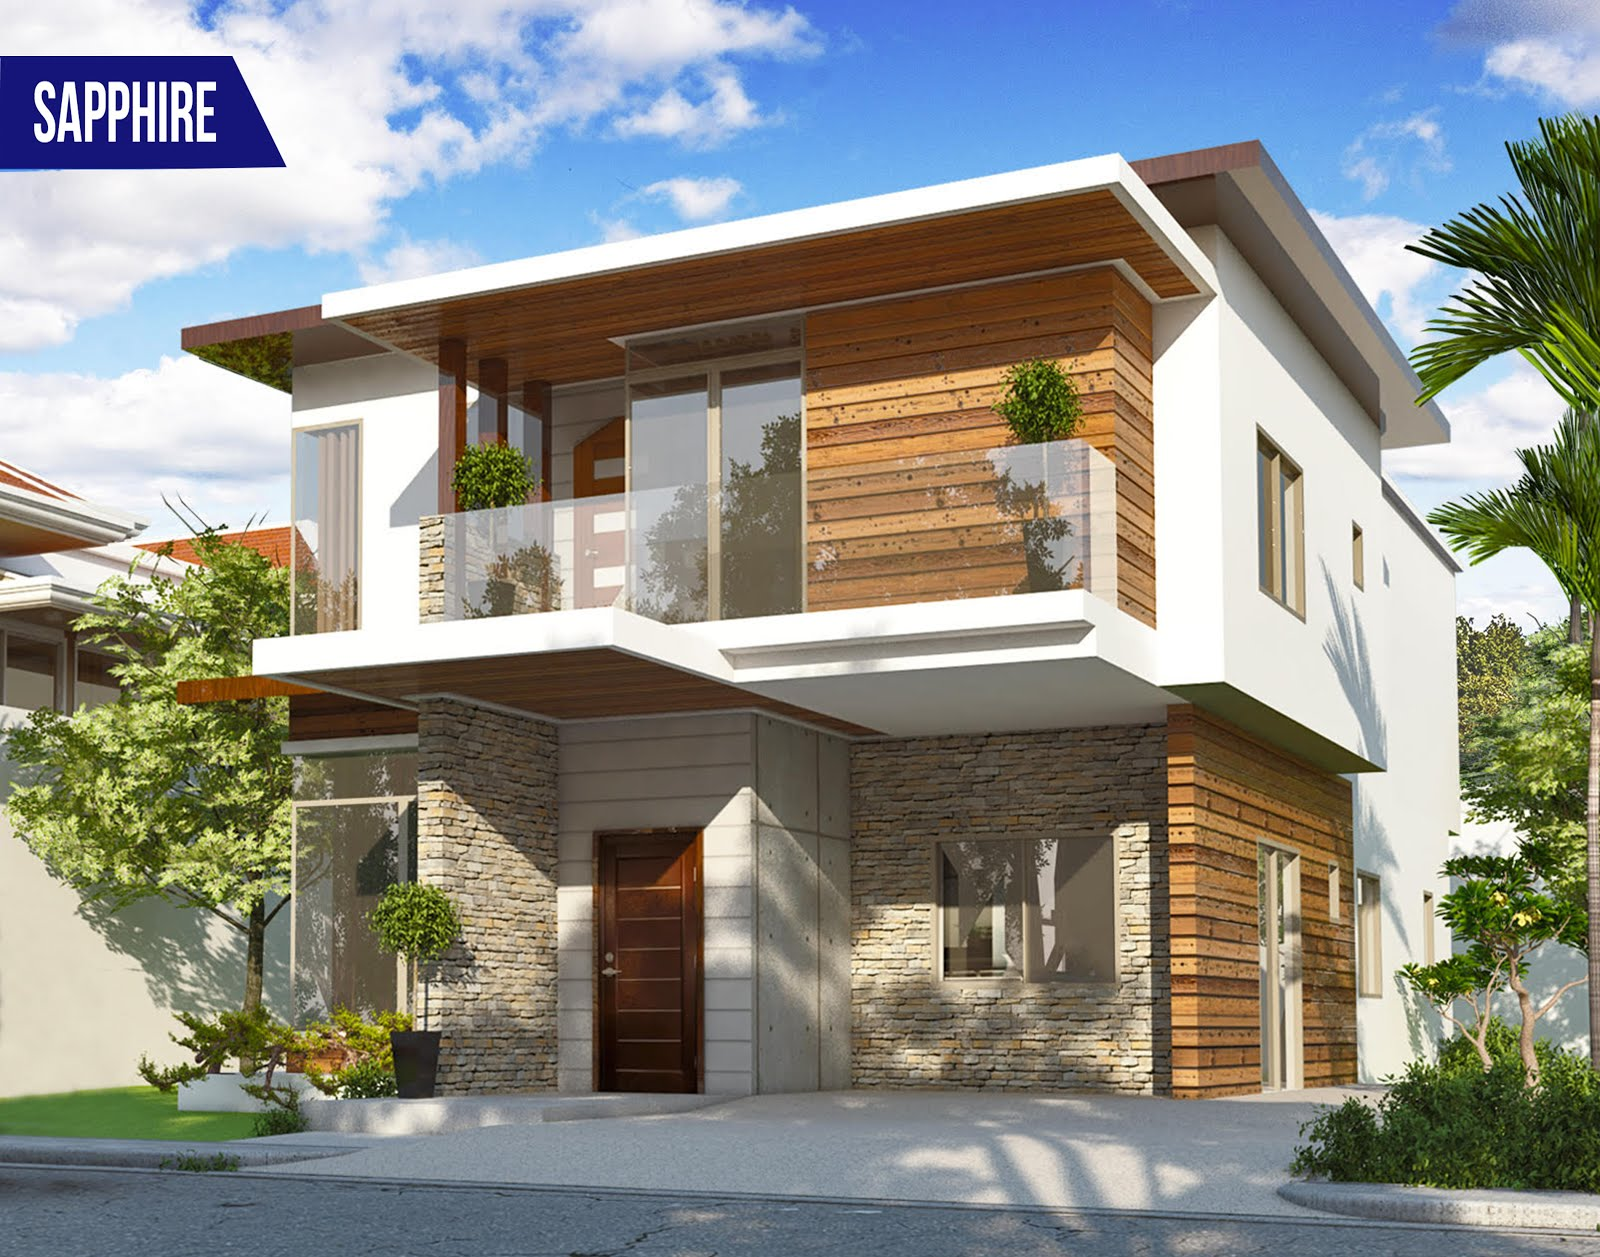 A smart philippine house builder the basics of latest for Latest modern home designs